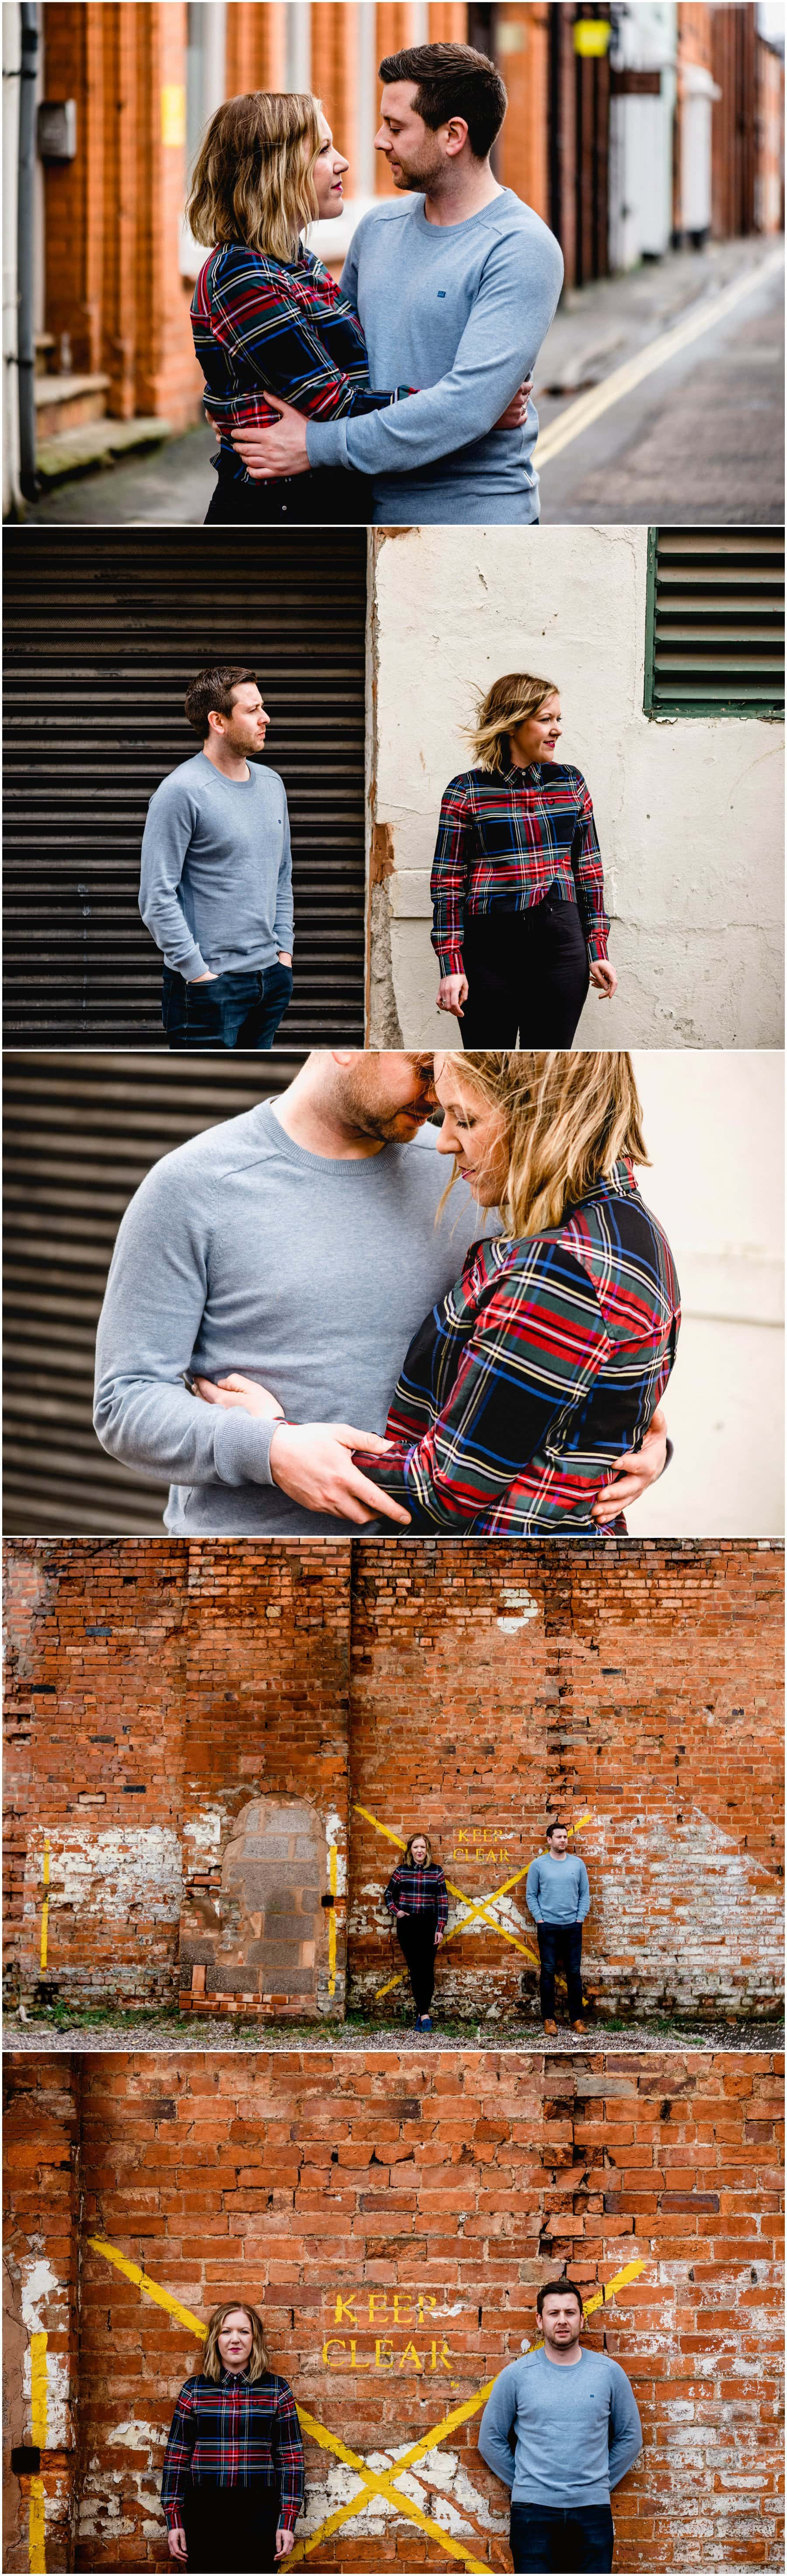 Bec and Stu against urban backdrops in Birmingham's Jewellery Quarter for their engagement shoot